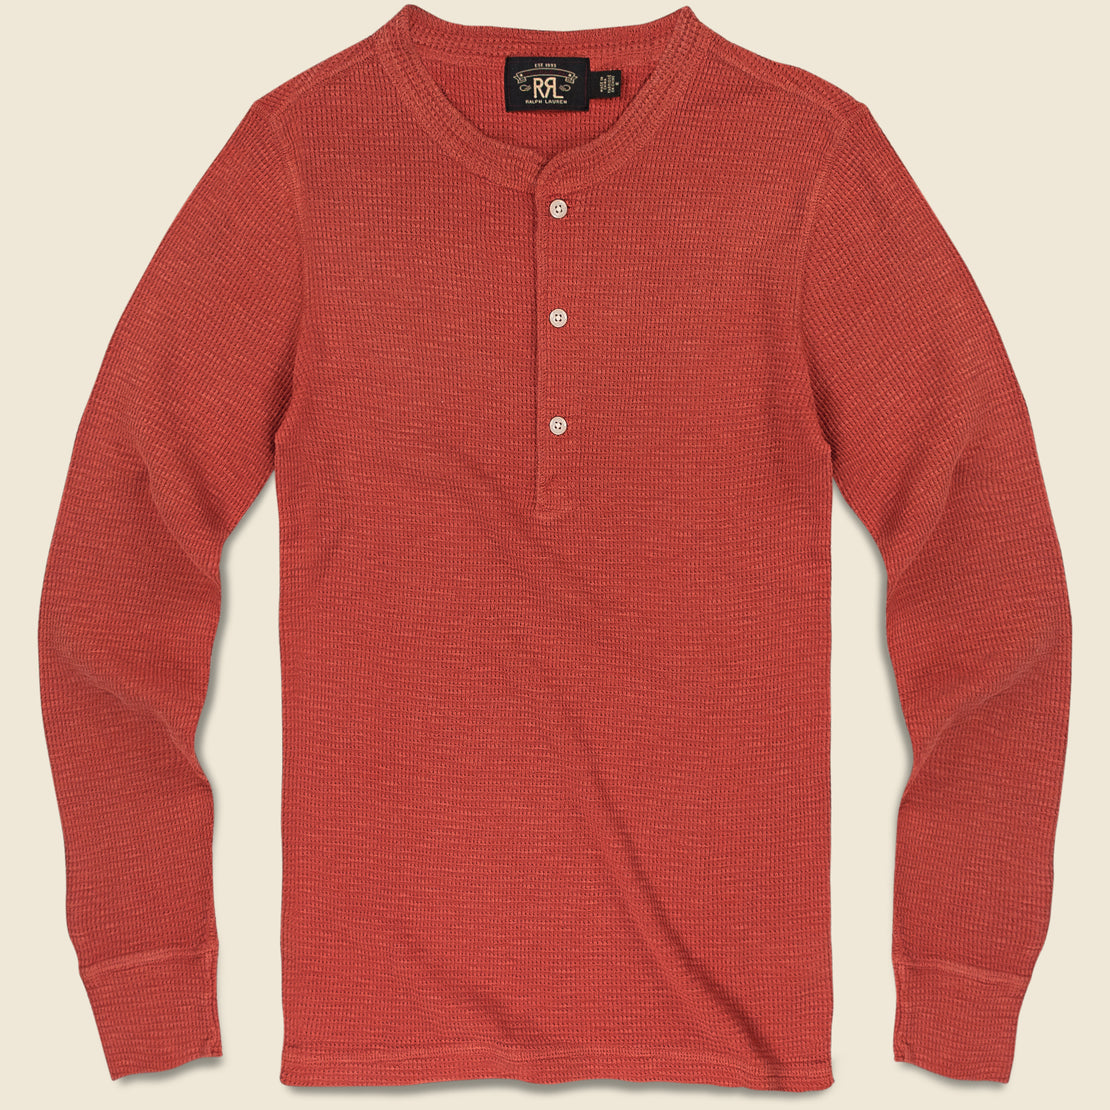 RRL Waffle-Knit Henley - Trading Post Red